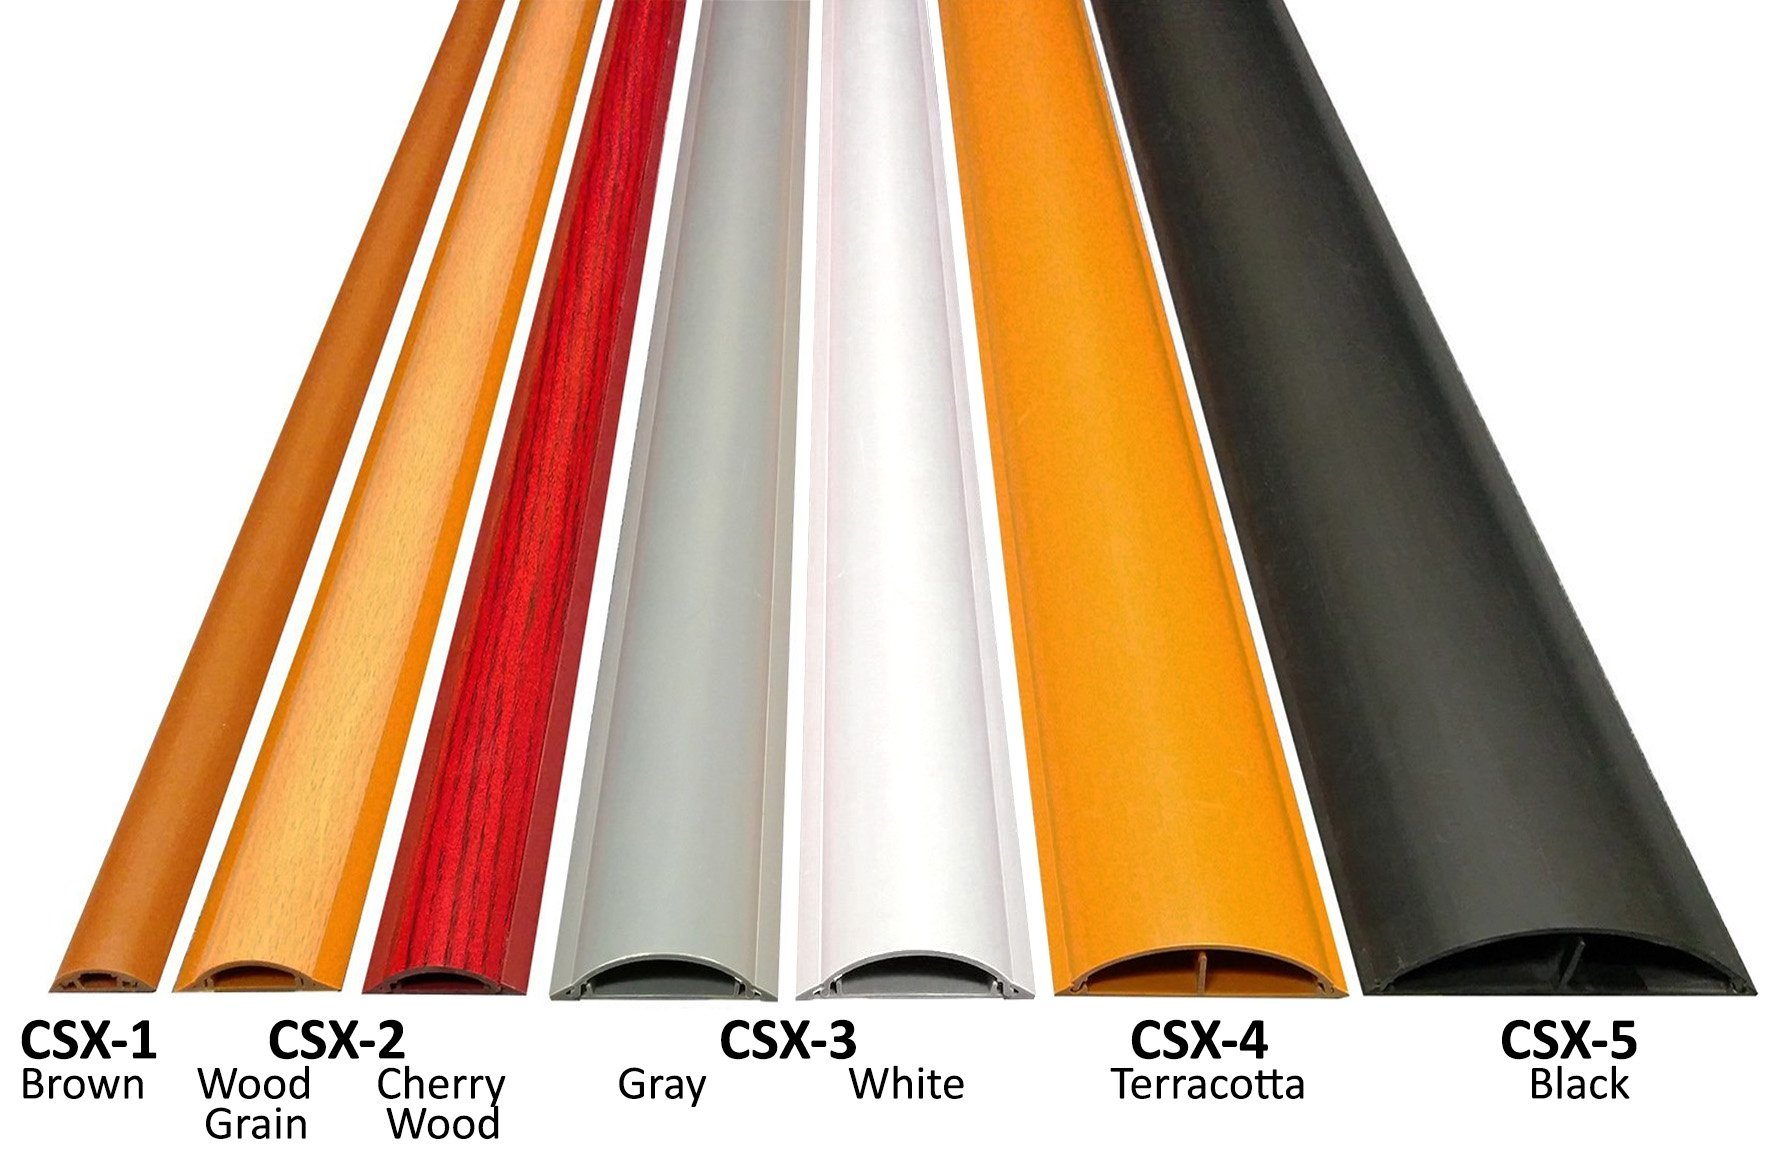 Cable Shield Cord Cover - Model: CSX-2 - Length: 59'' - Color: Wood Grain - 2 Pack